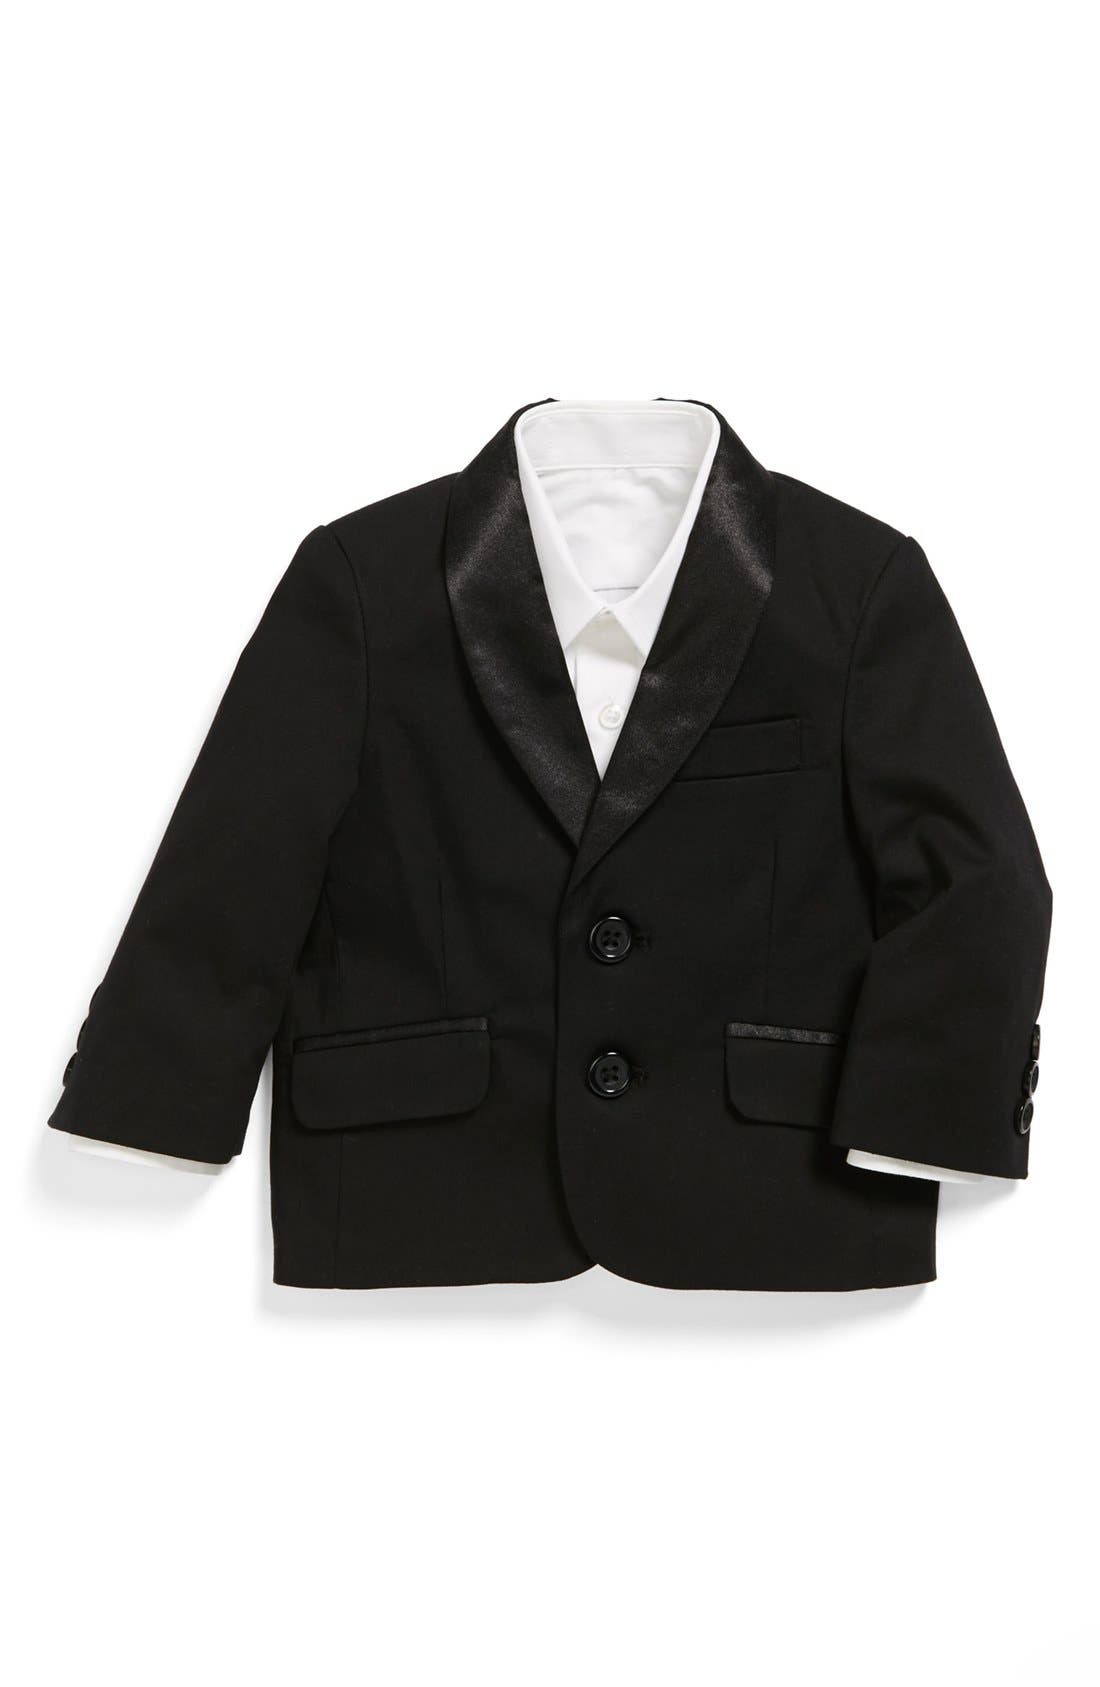 Alternate Image 1 Selected - C2 by Calibrate 'Holiday' Dinner Jacket (Toddler Boys)